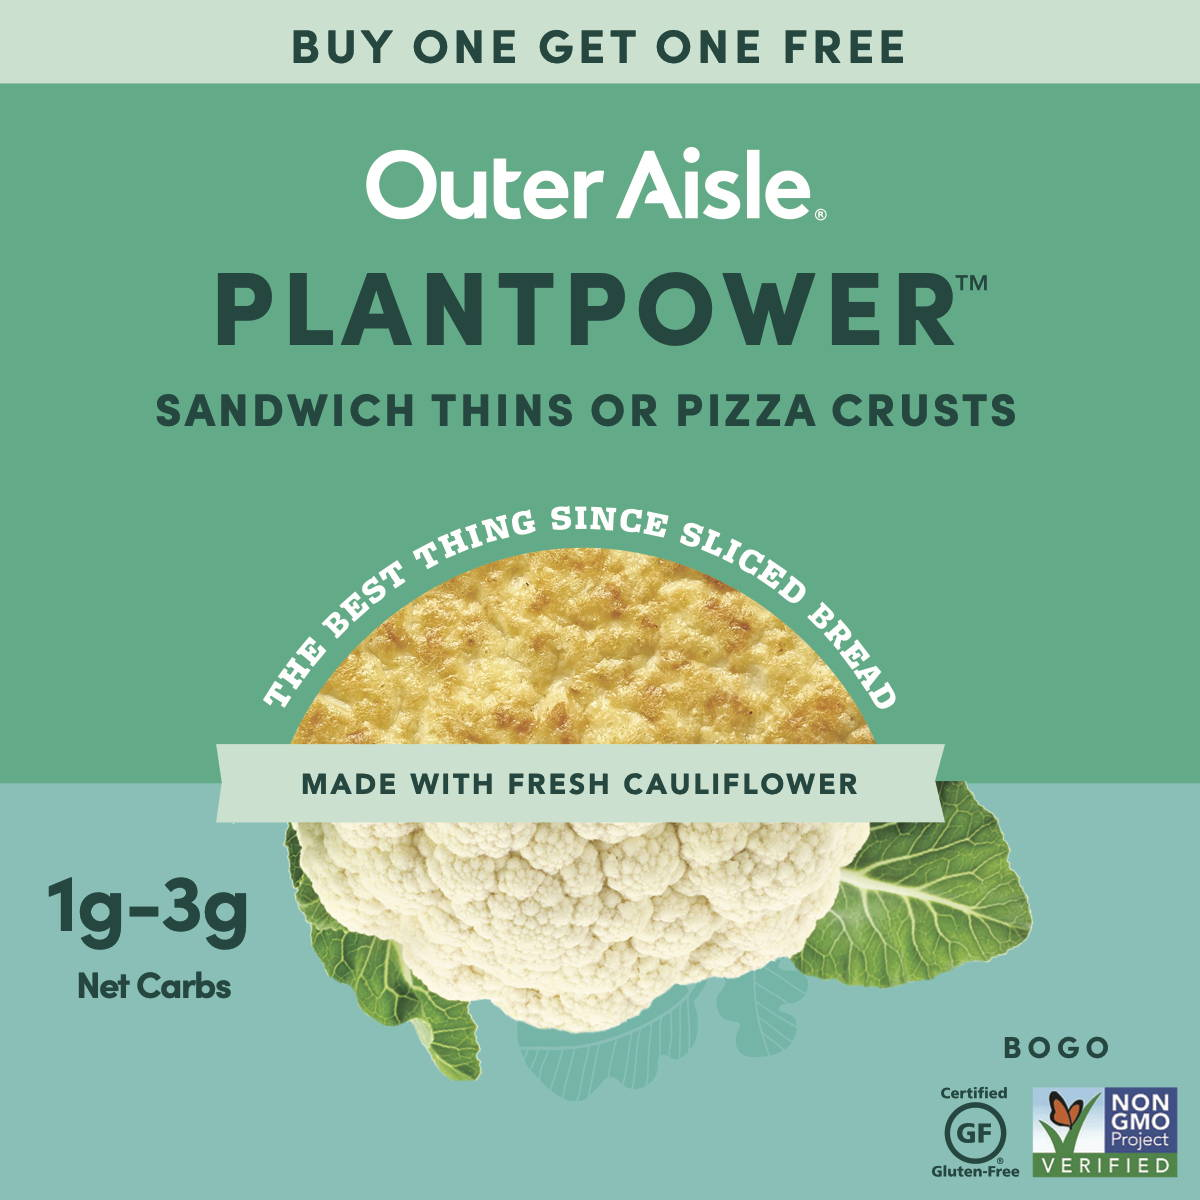 buy one outer aisle item, get one free banner with pizza crusts and sandwich thins